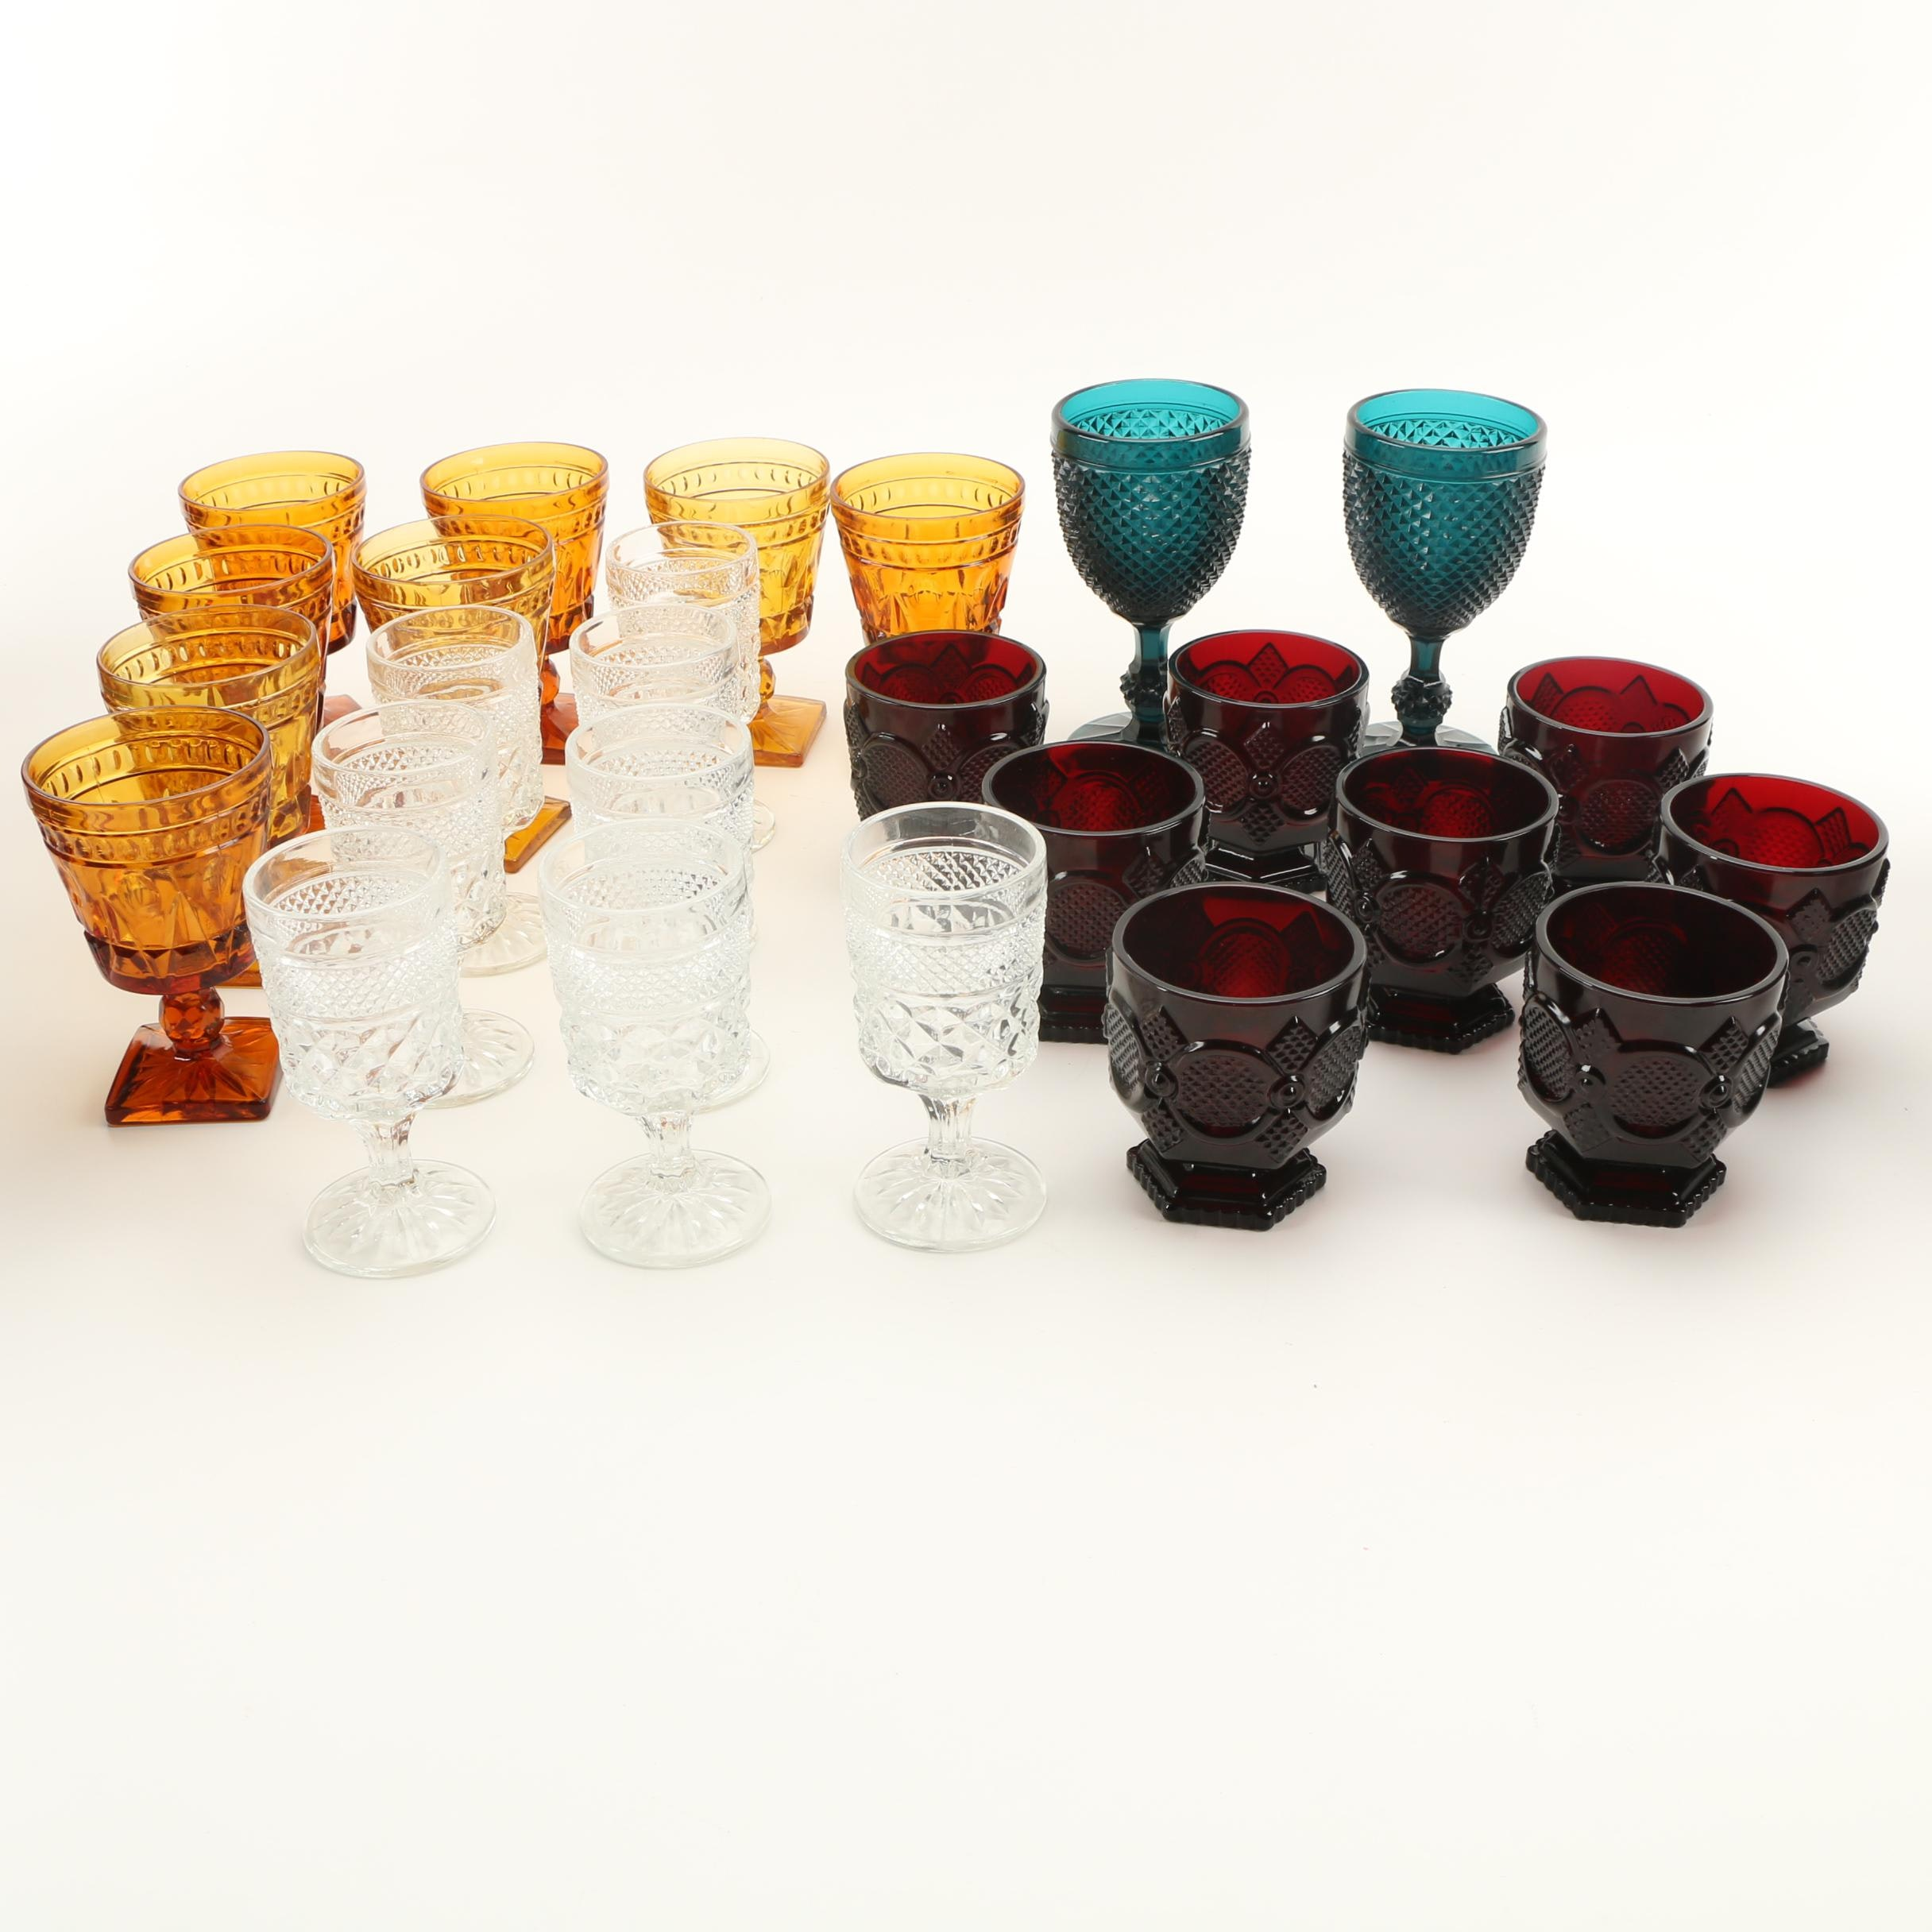 Colored Wine Glasses and Tumblers Featuring Depression Glass